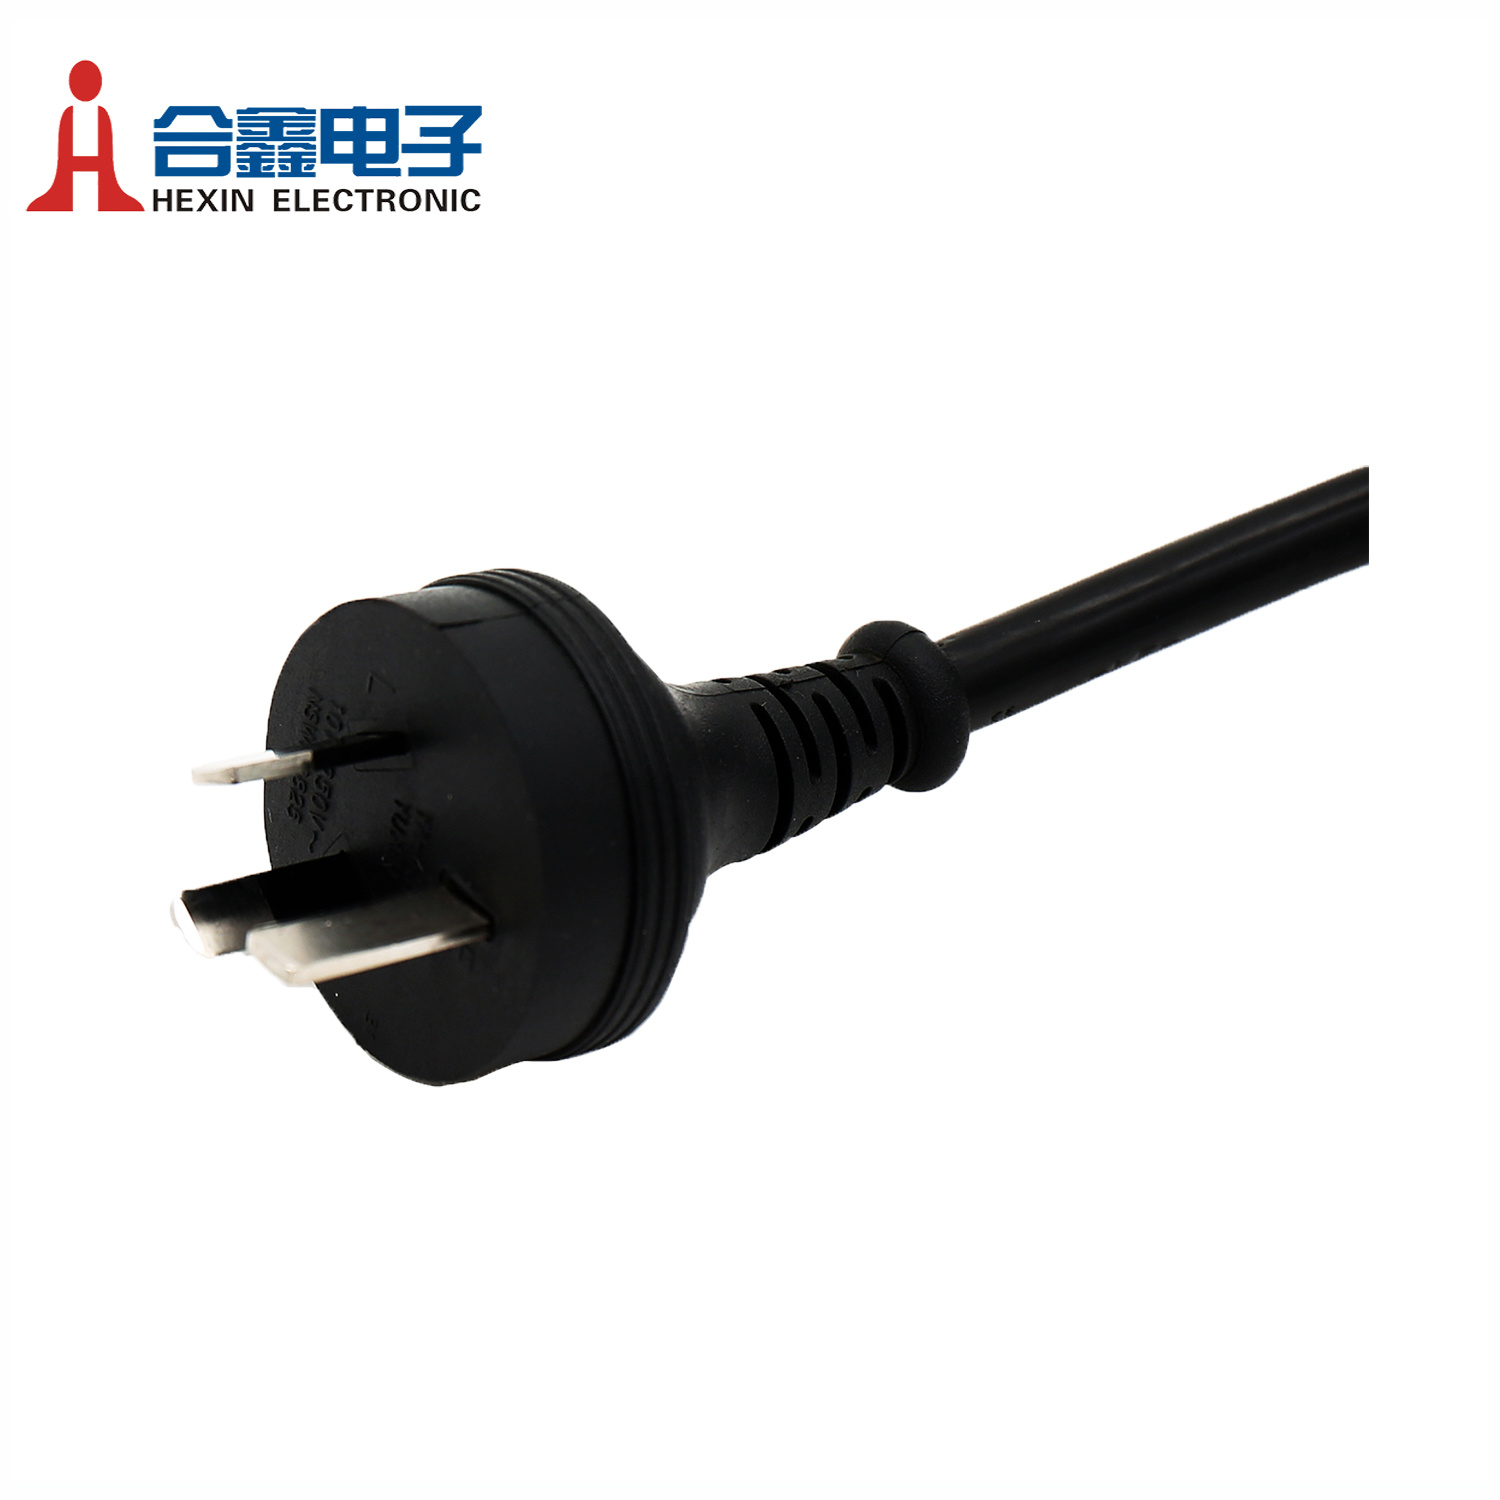 china australia saa 3pin mains cord mains cable china power cablechina australia saa 3pin mains cord mains cable china power cable, saa plug